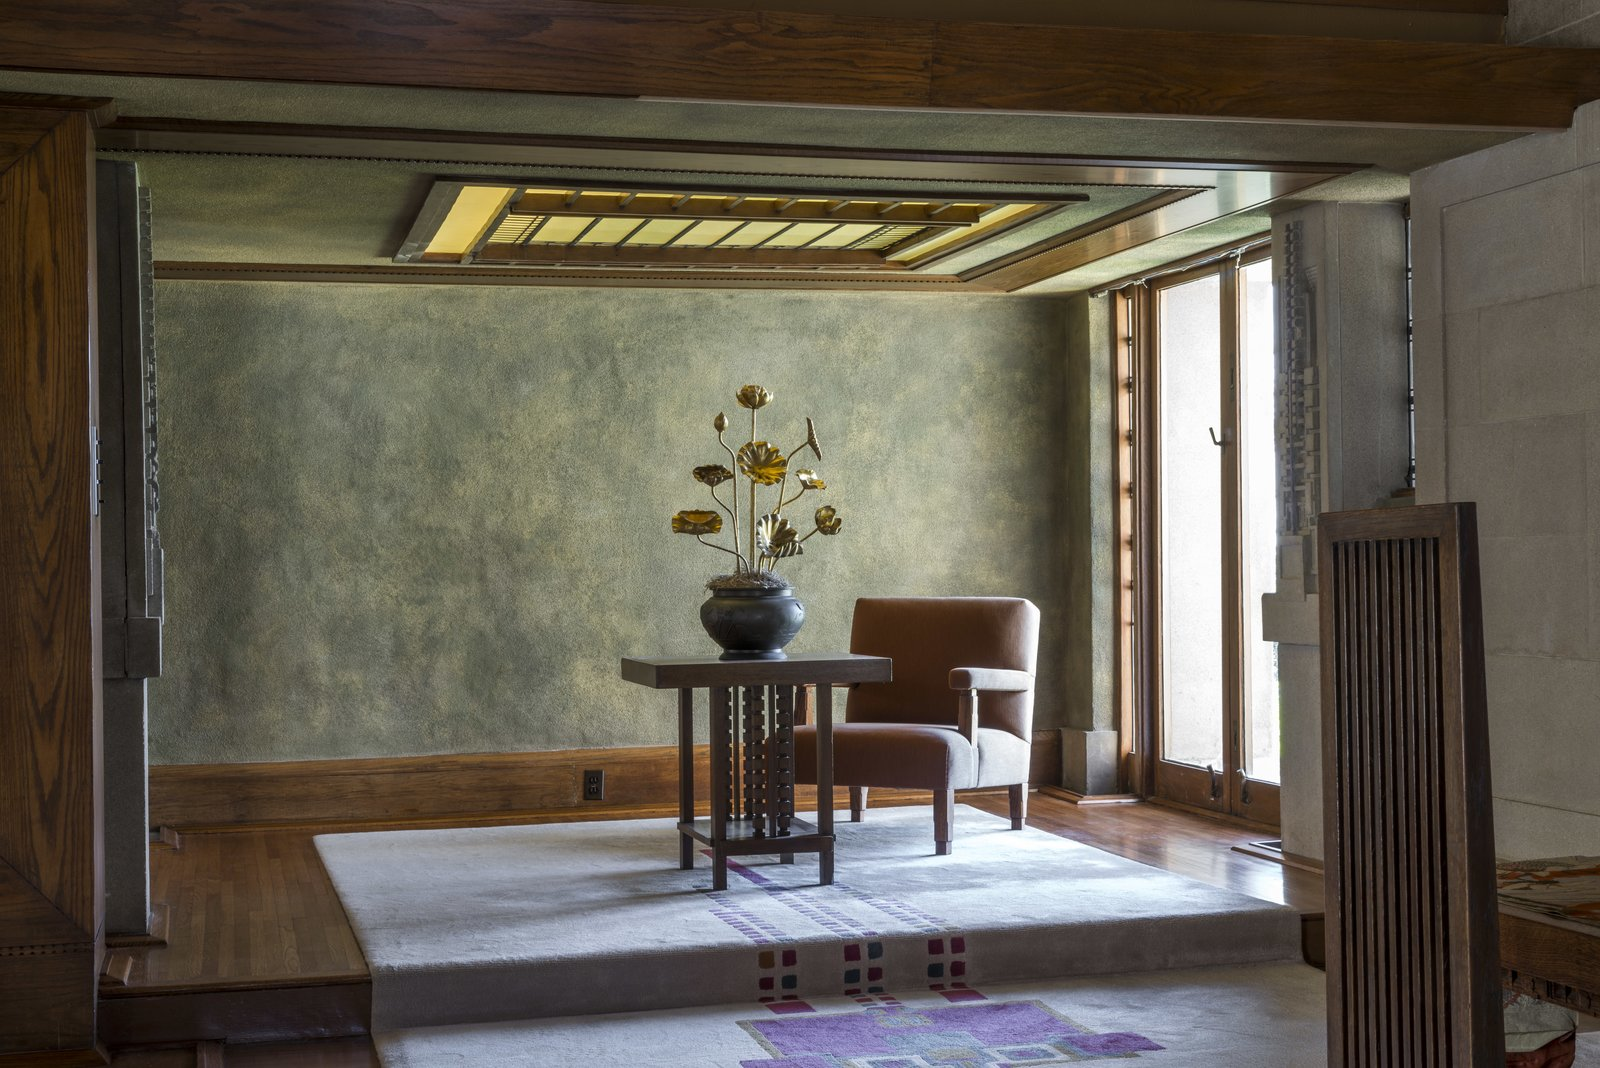 Since Barnsdall was such a strong-minded woman who knew what she wanted, she only let Wright design the furnishings for two of the rooms, including the living room and the dining room. The rest of the house was filled with items she had collected throughout her travels.  Photo 7 of 14 in Iconic Perspectives: Frank Lloyd Wright's Hollyhock House